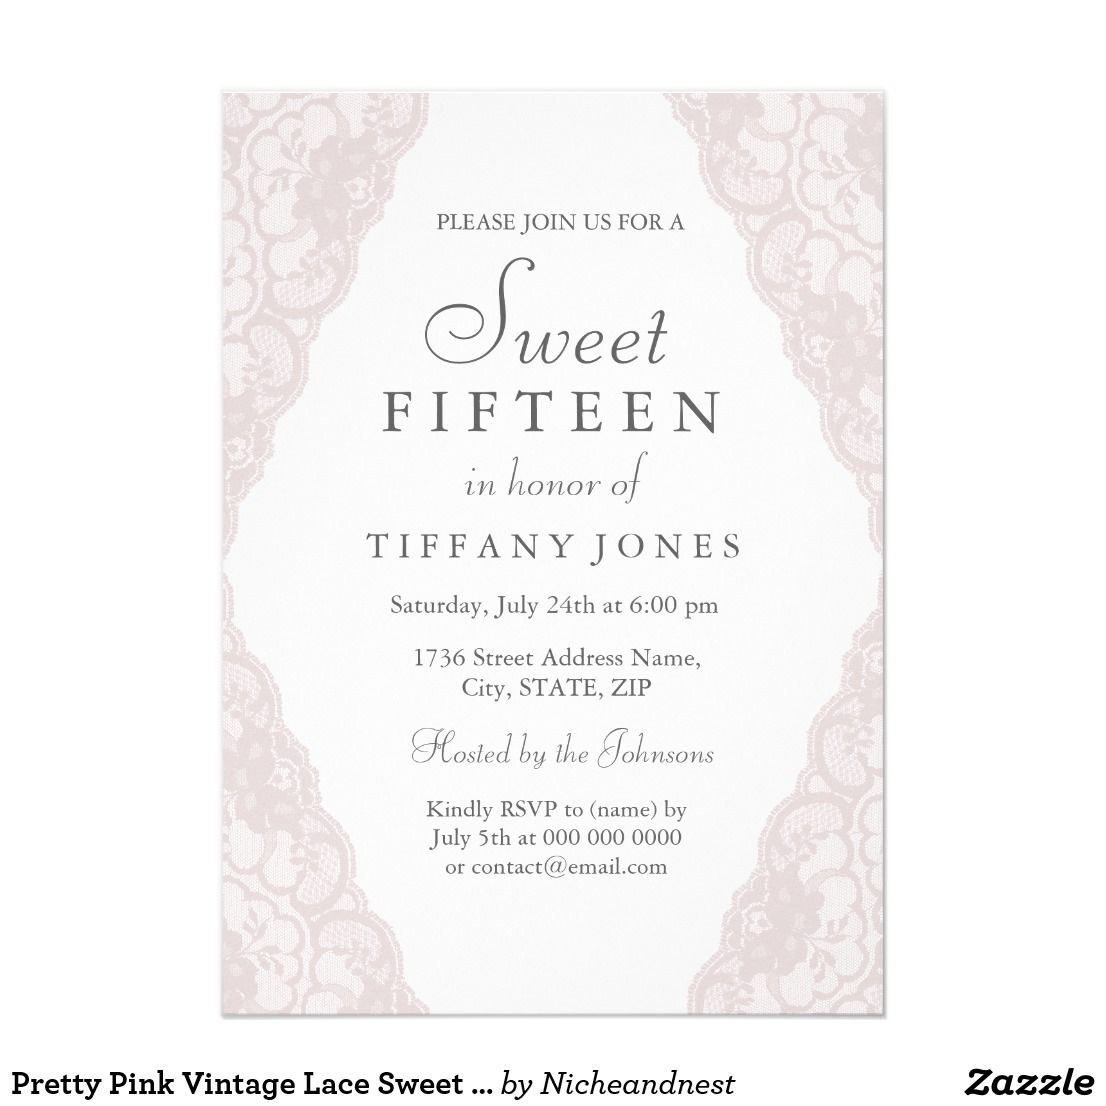 Sweet 15 Party Invitations Gallery invitation templates free download